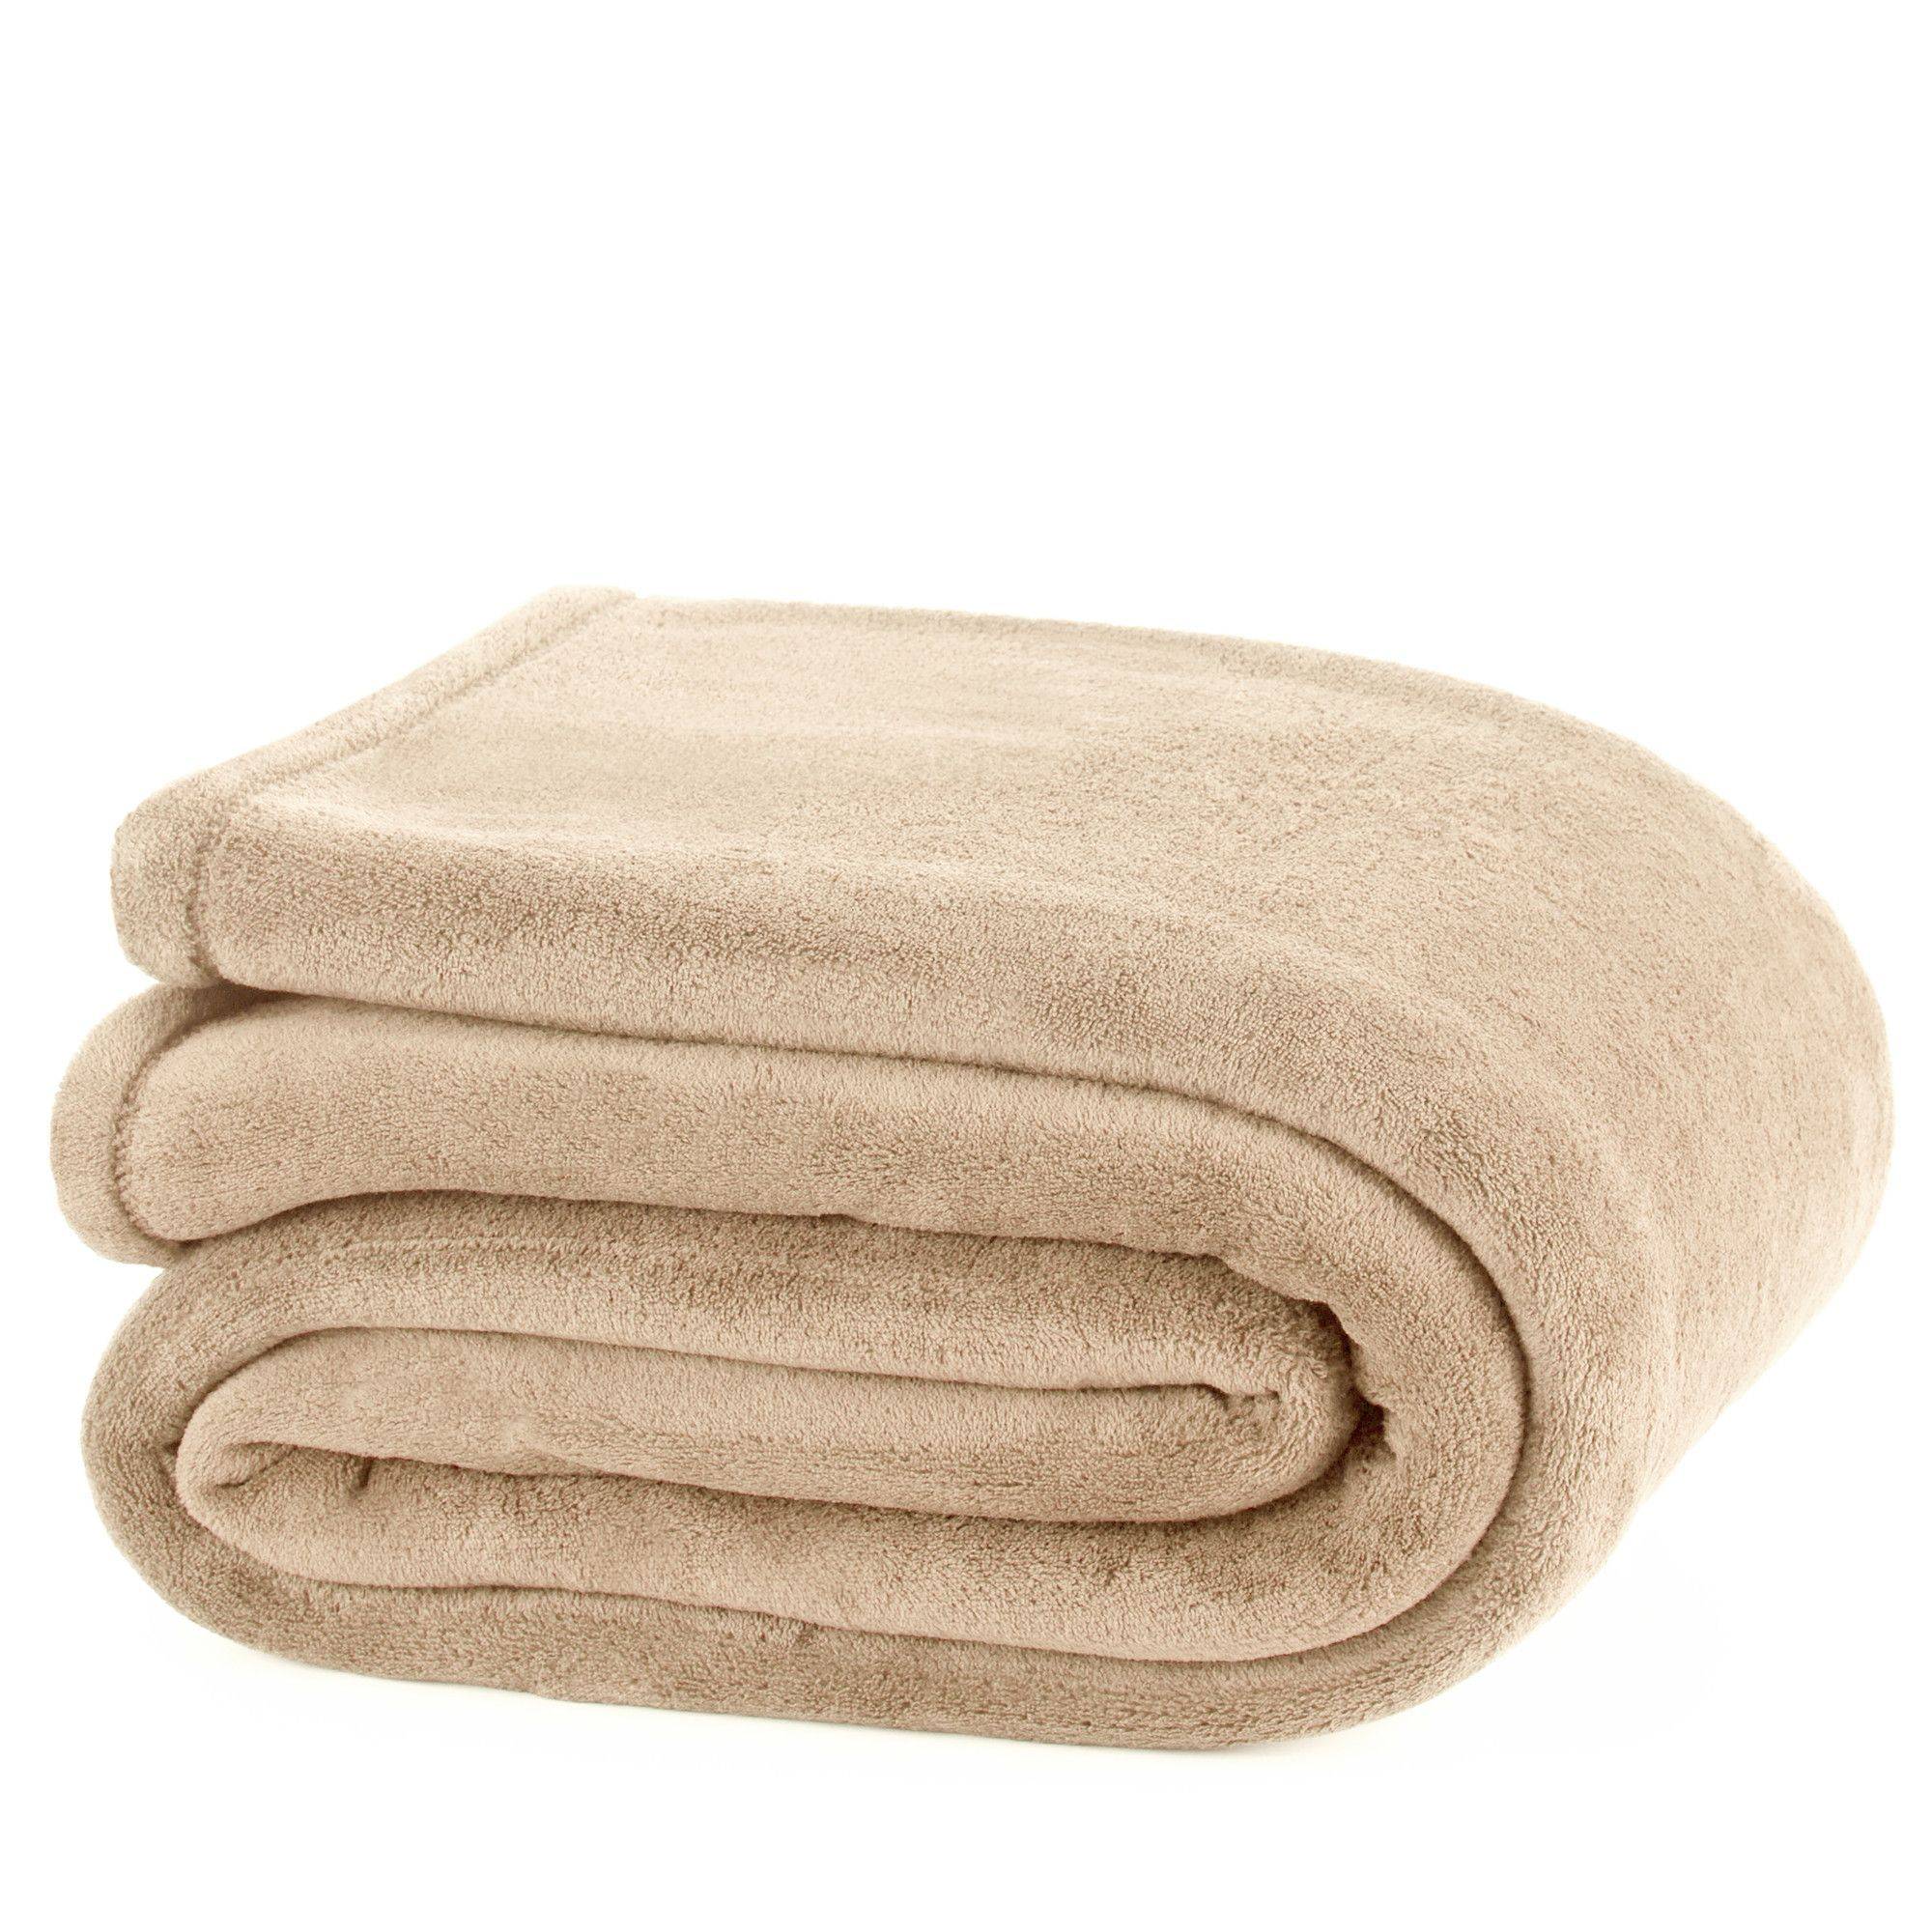 Plush Throw Blanket